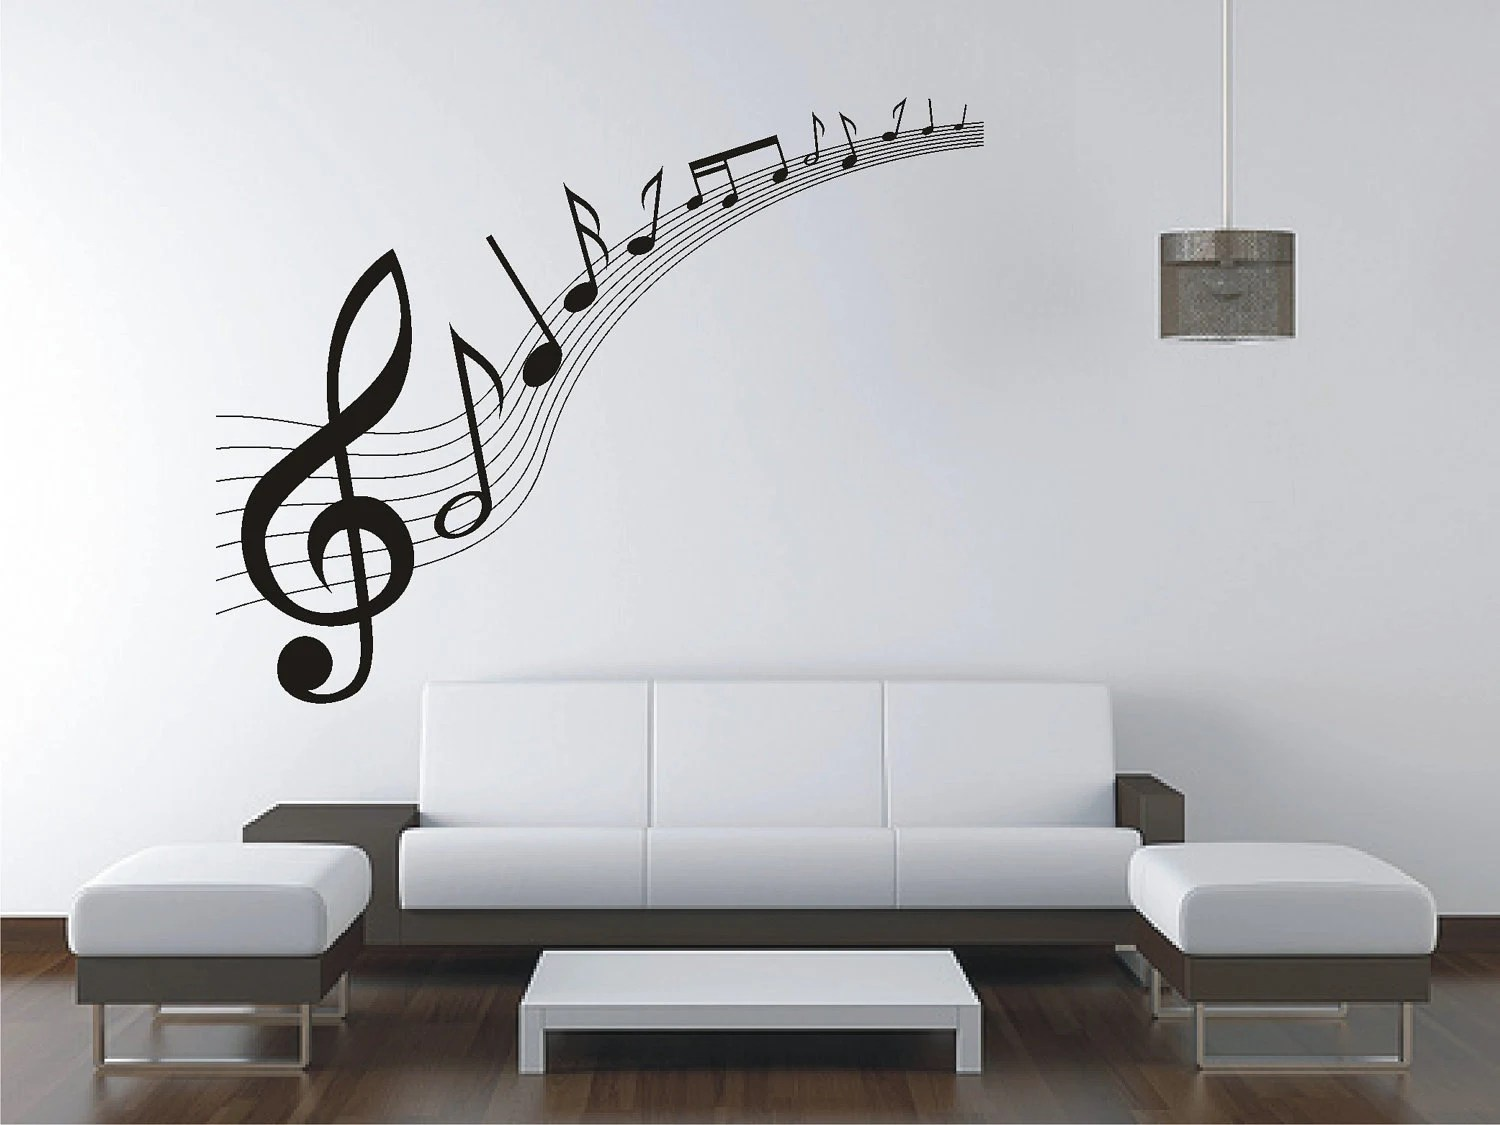 Vinyl Wall Decal Large Music Music Notes Wall Sticker Vinyl Decal Wall